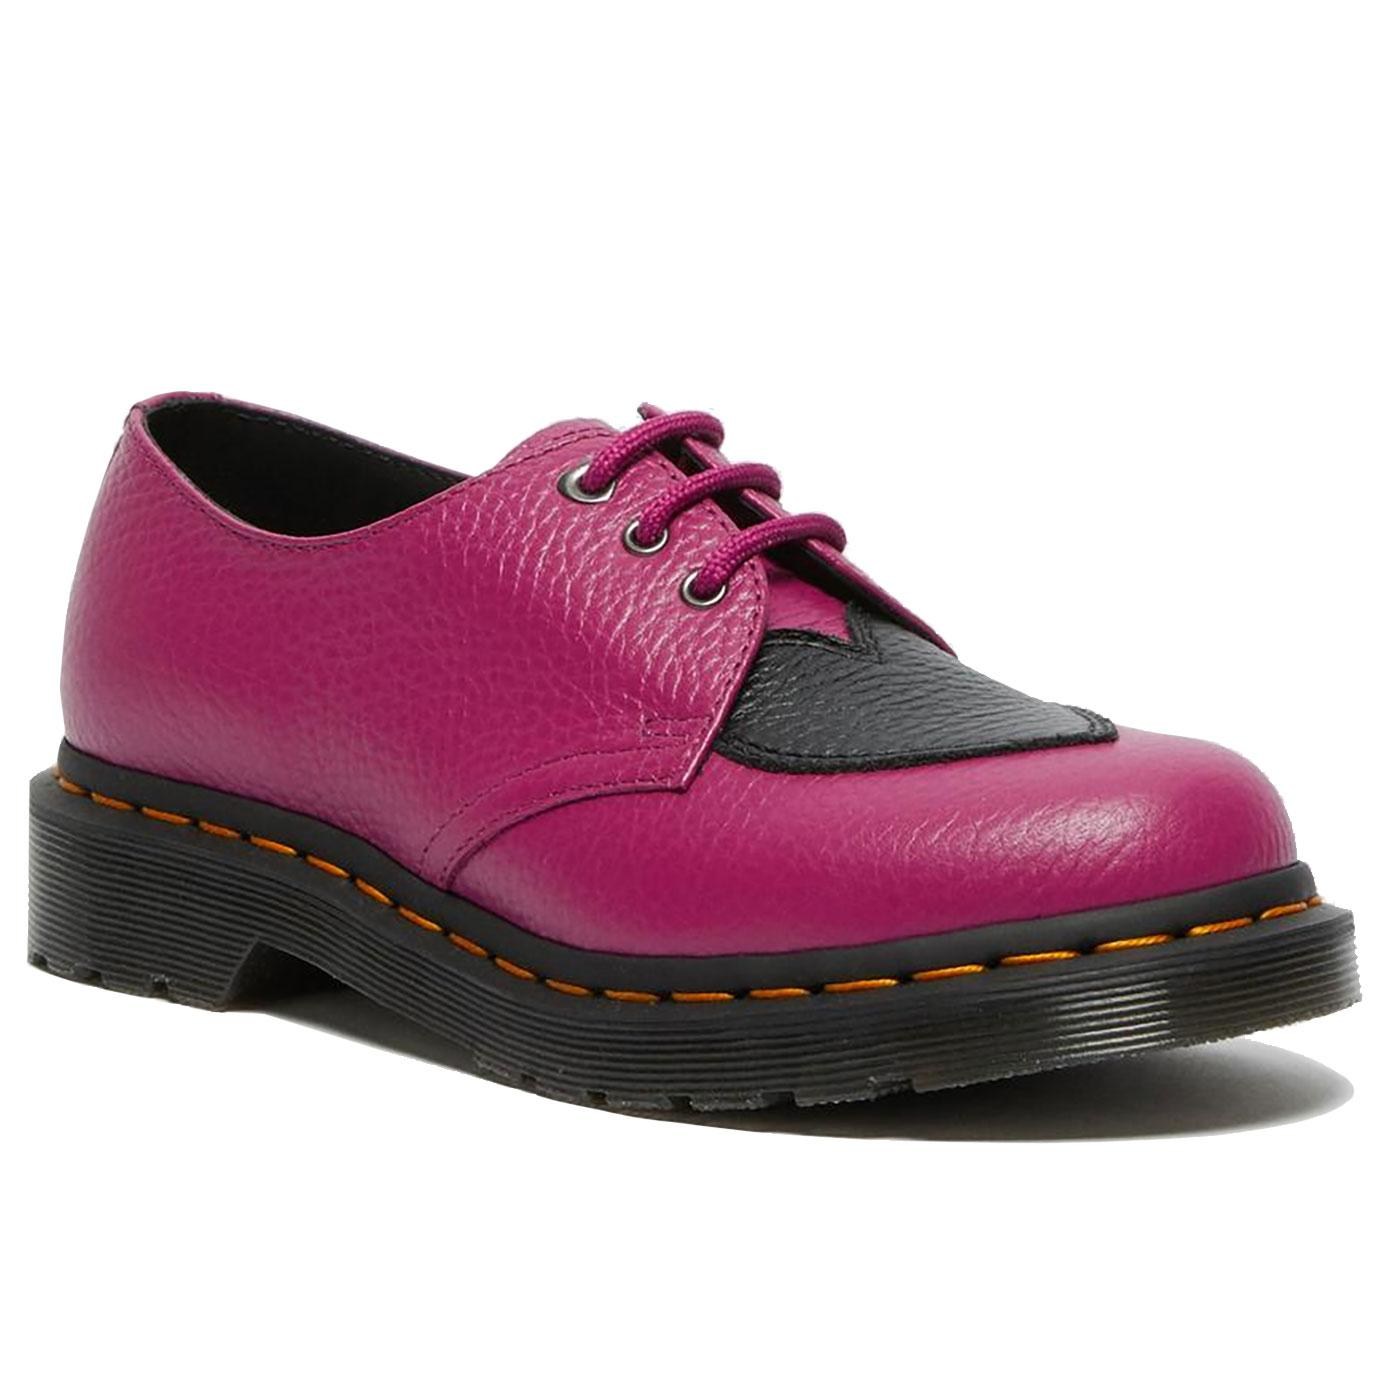 1461 Amore DR MARTENS Heart Patch Oxford Shoes F/B